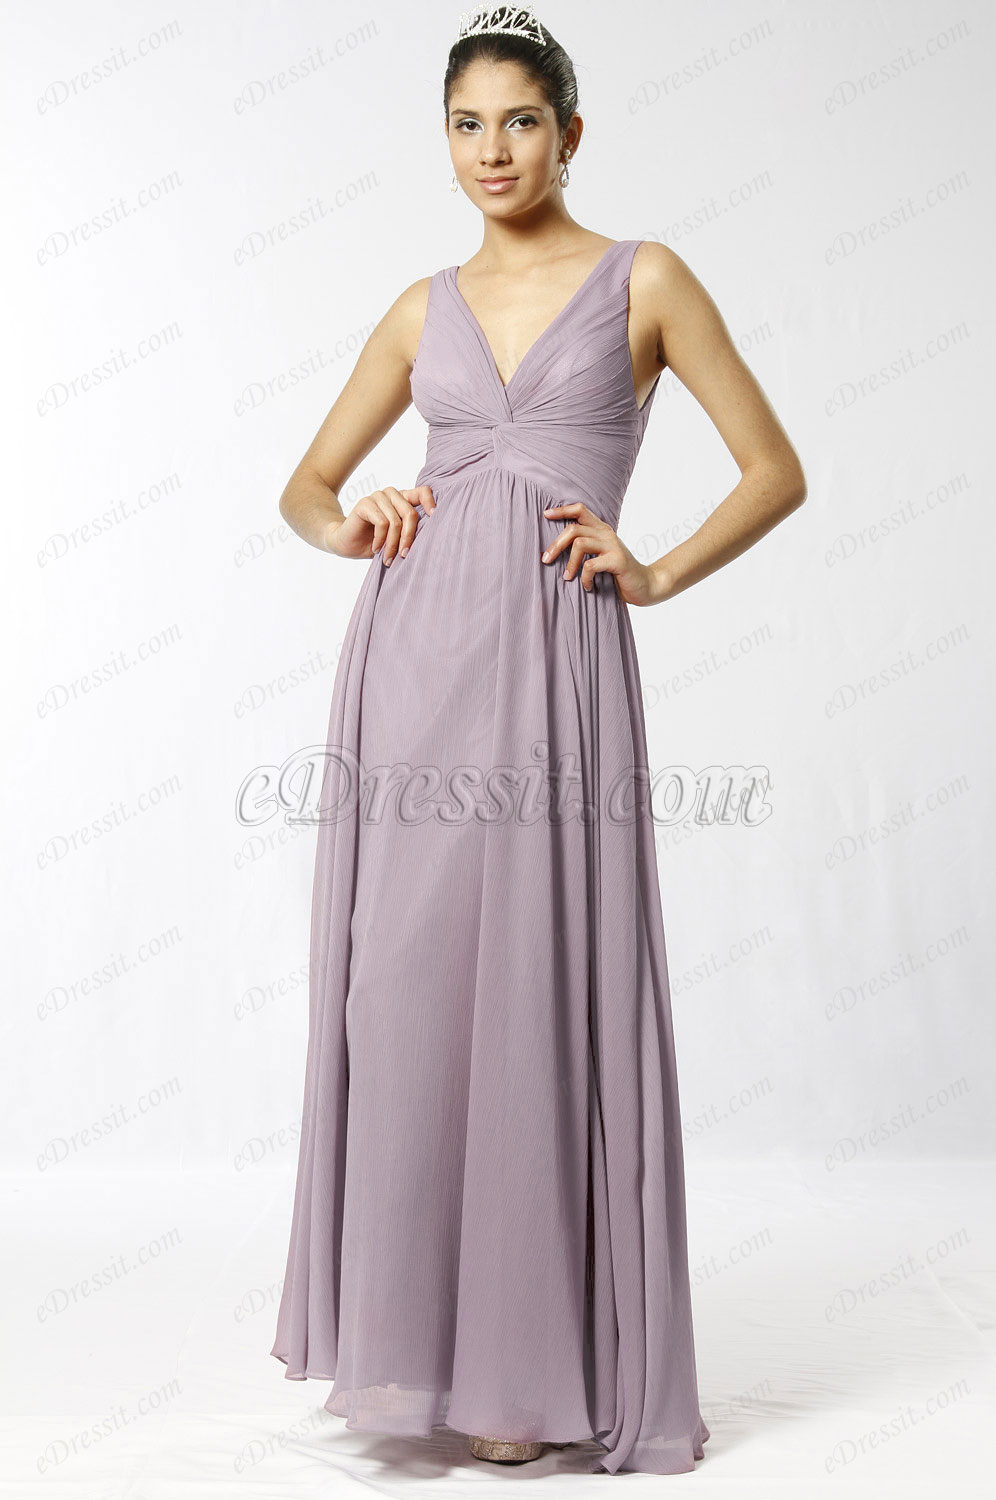 Clearance Sale !  eDressit Evening Dress--Size UK8 (00098001b)